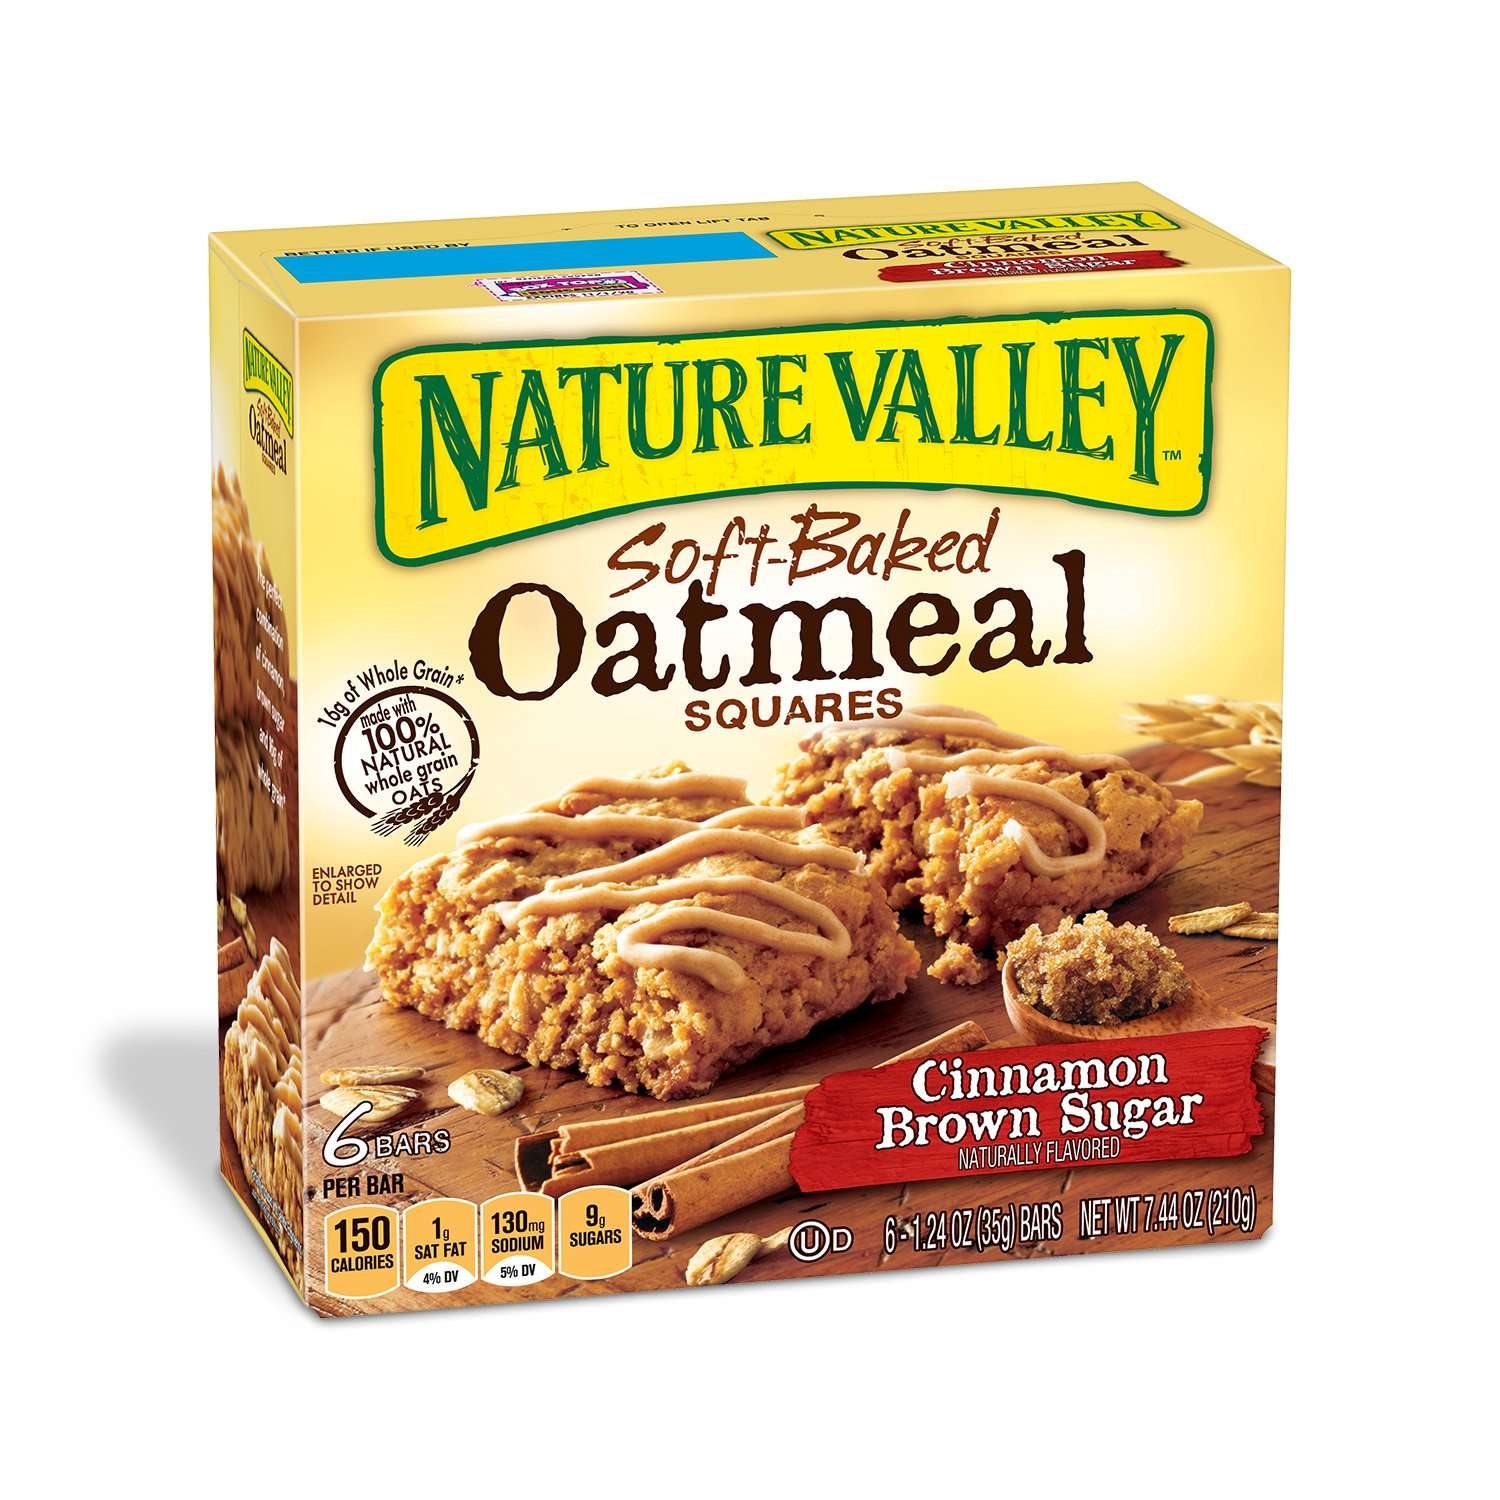 Nature Valley Soft-Baked Oatmeal Squares, Cinnamon Brown Sugar, 12 Bars - 1.2 oz (Pack of 6)